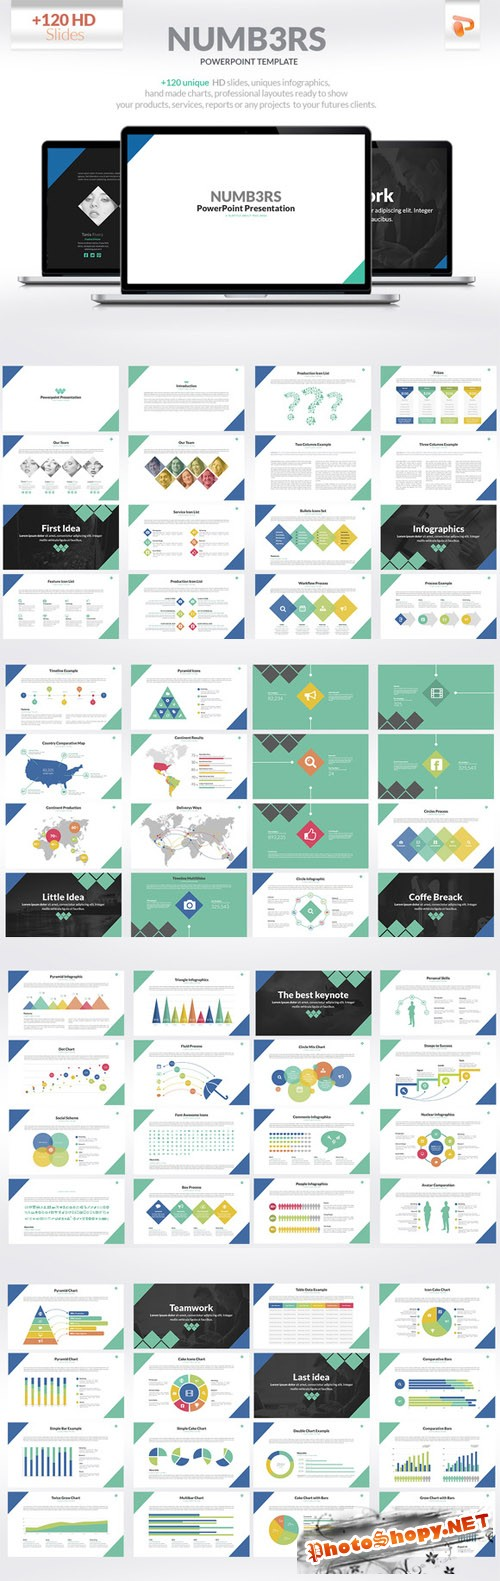 CreativeMarket - Numbers | Powerpoint Presentation